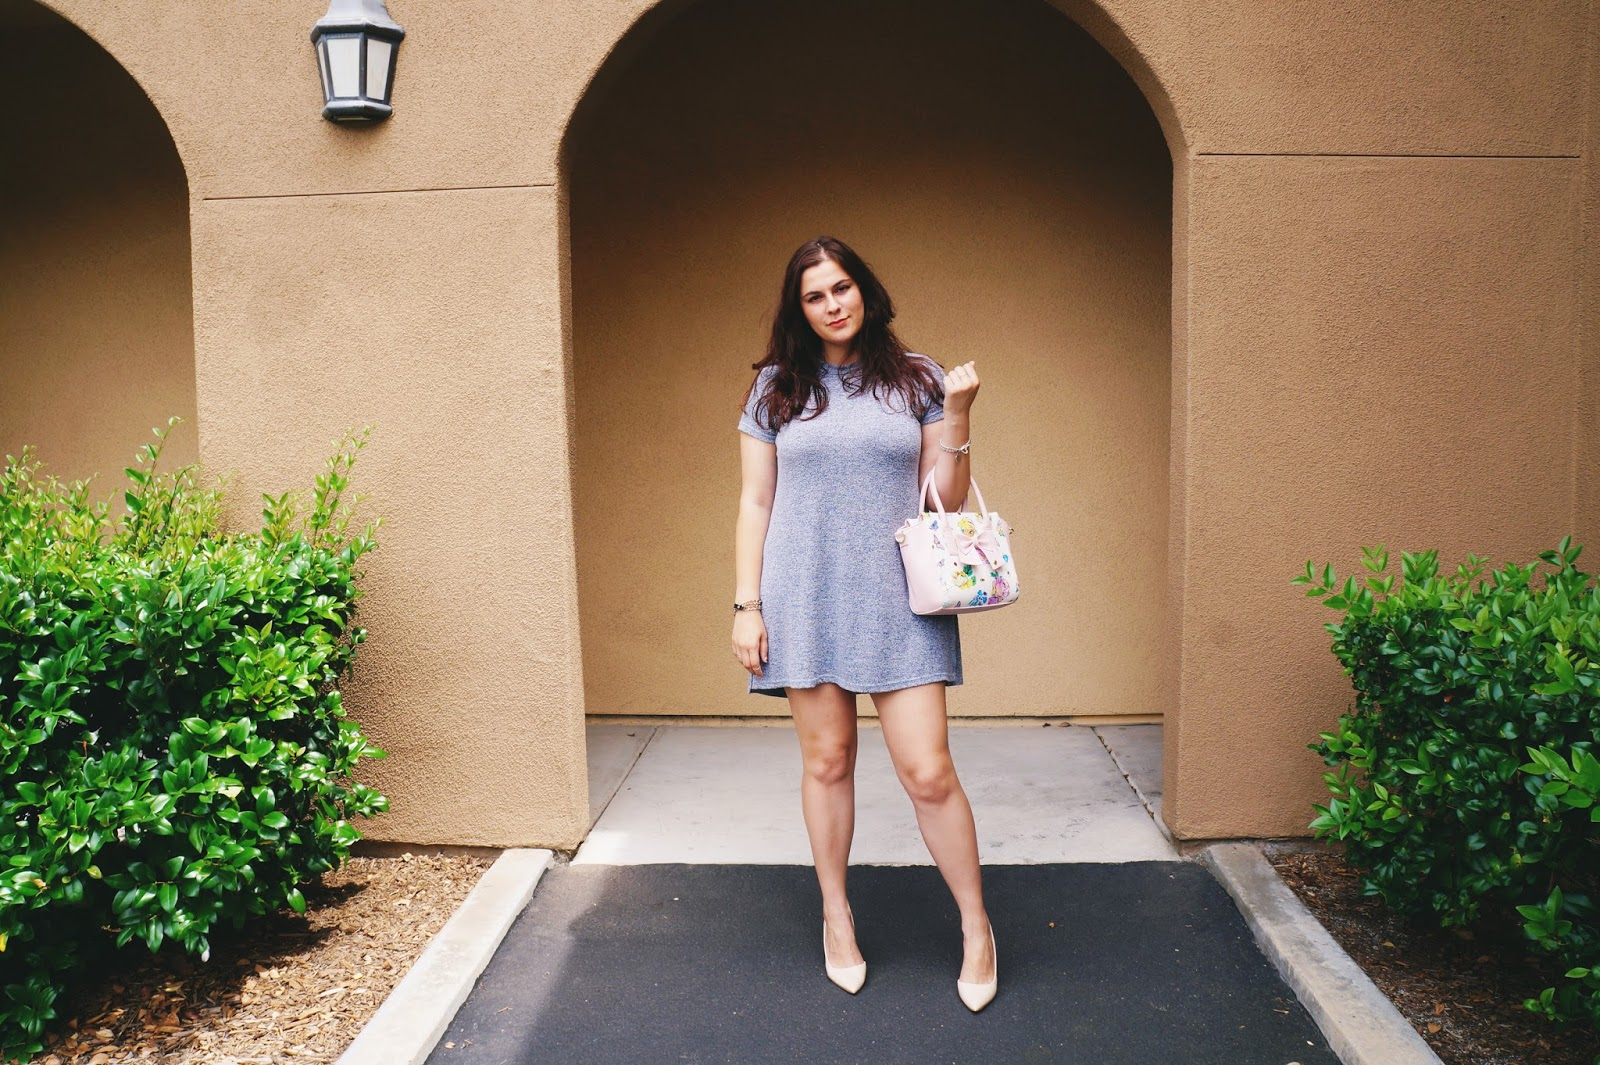 california lifestyle blogger, summer attire, ootd